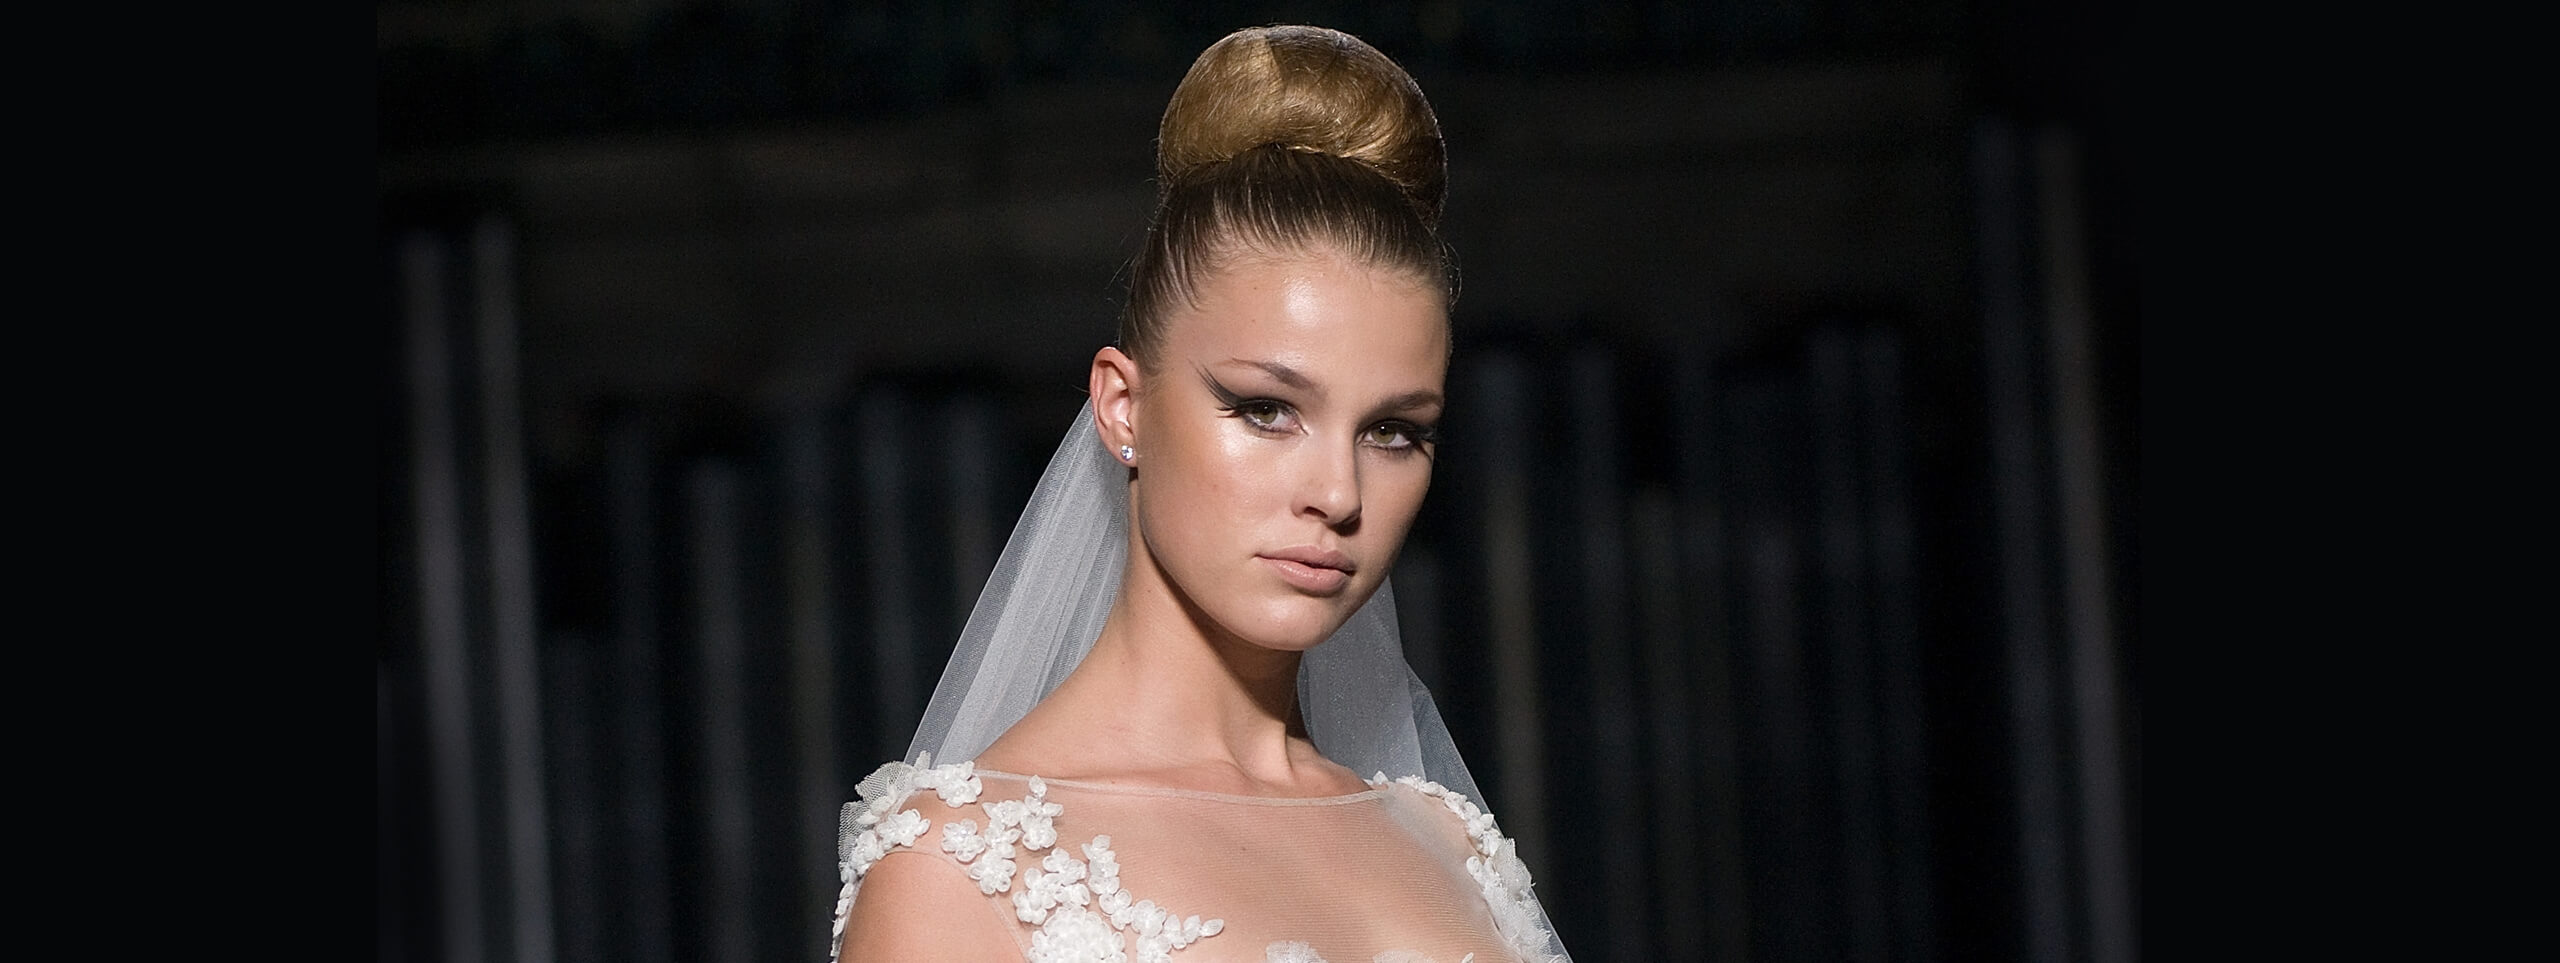 Woman with hair in high bun updo hairstyle for wedding